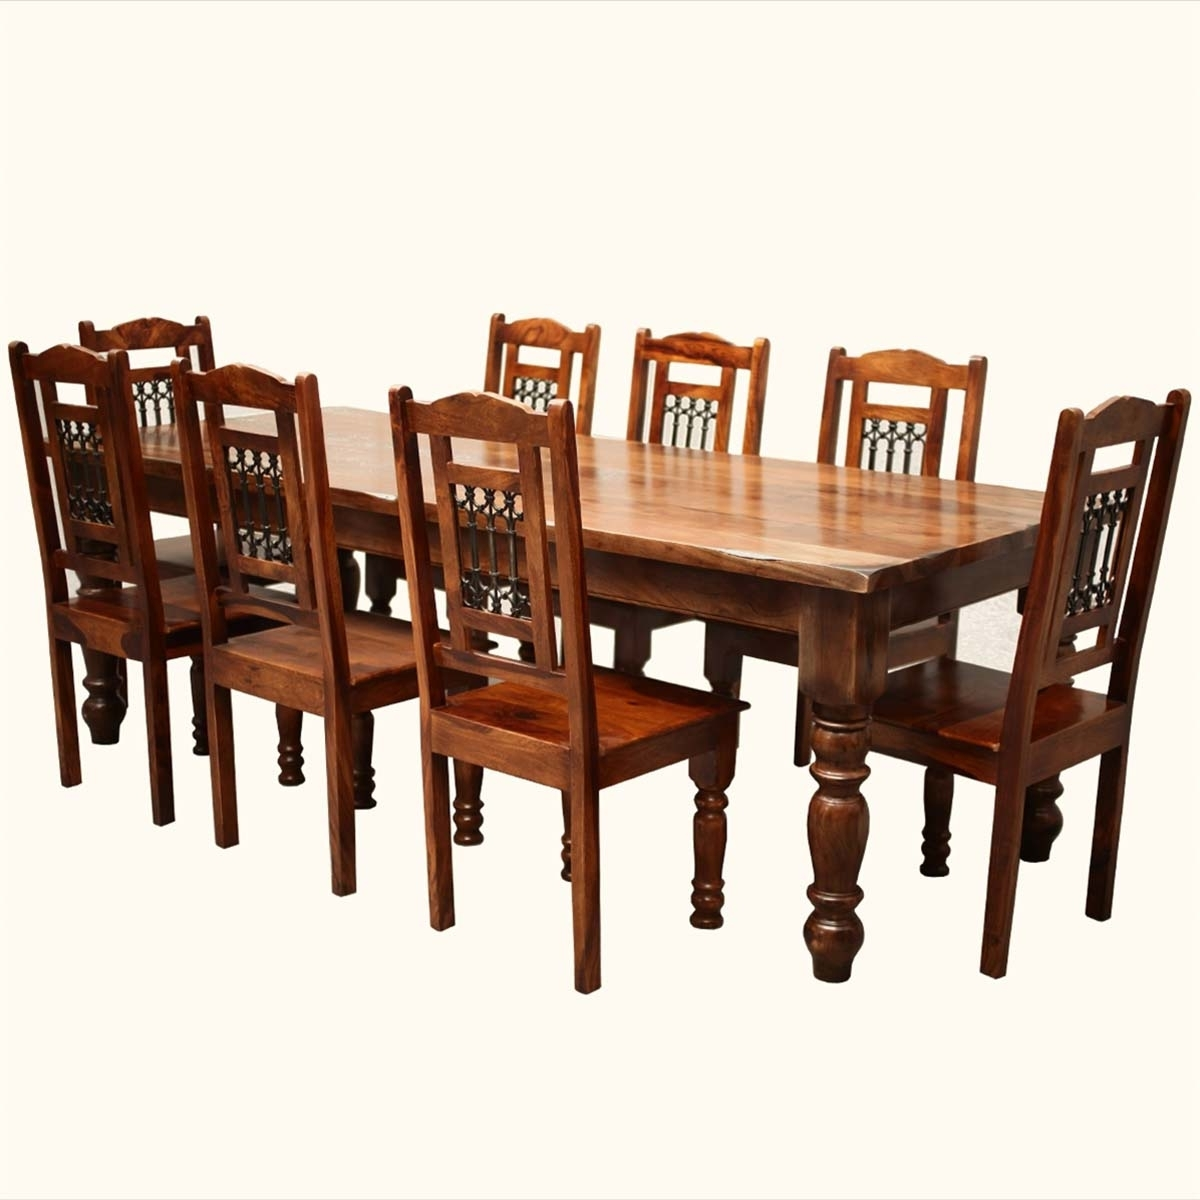 Dining Tables Set For 8 With Regard To Favorite 8 Chair Dining Table Sets Gallery Dining, Dining Table Set 8 Chairs (View 11 of 25)